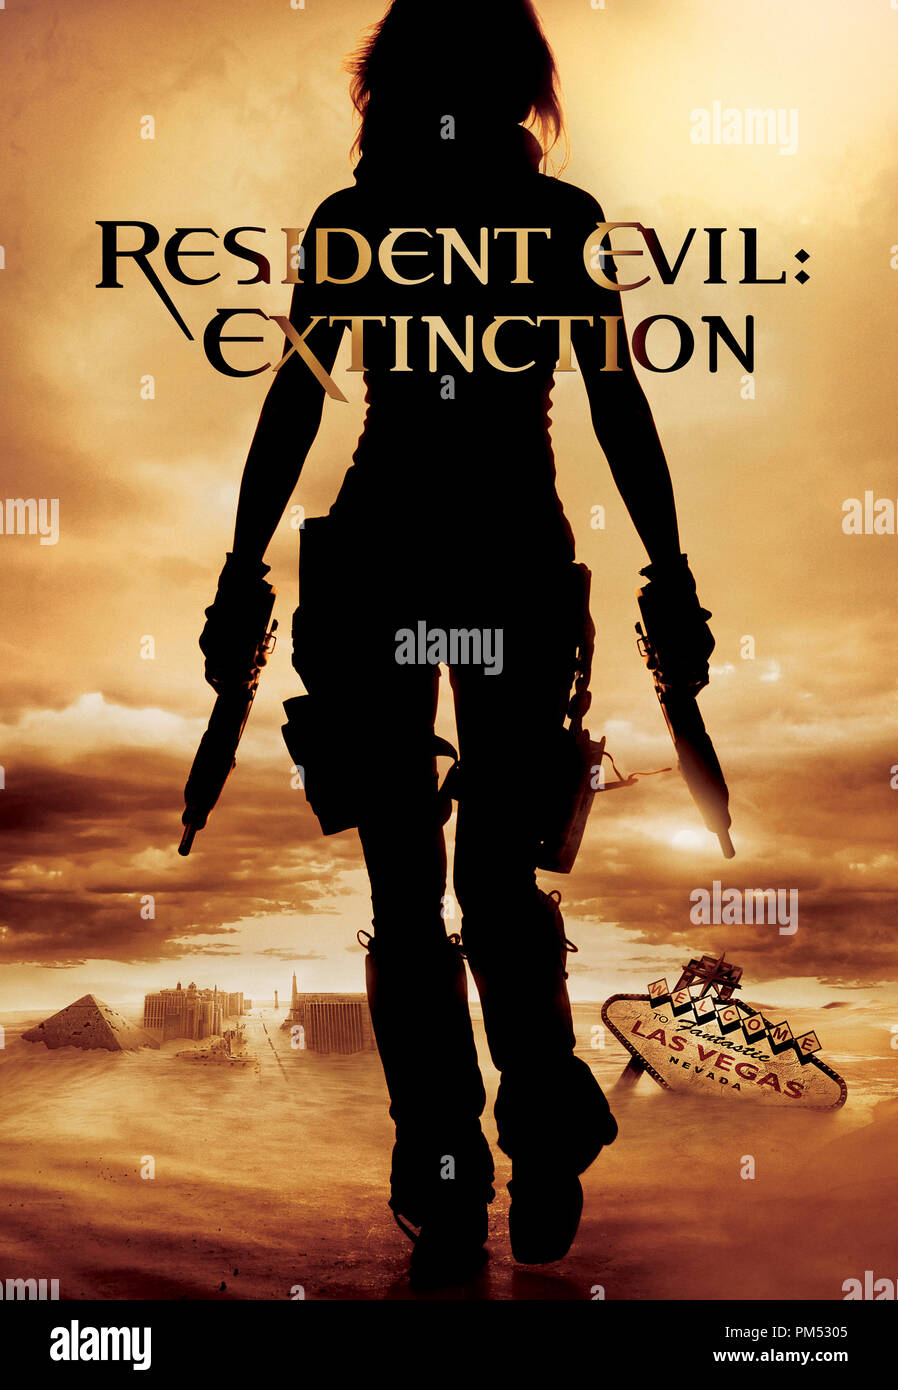 Movie Poster Resident Evil High Resolution Stock Photography And